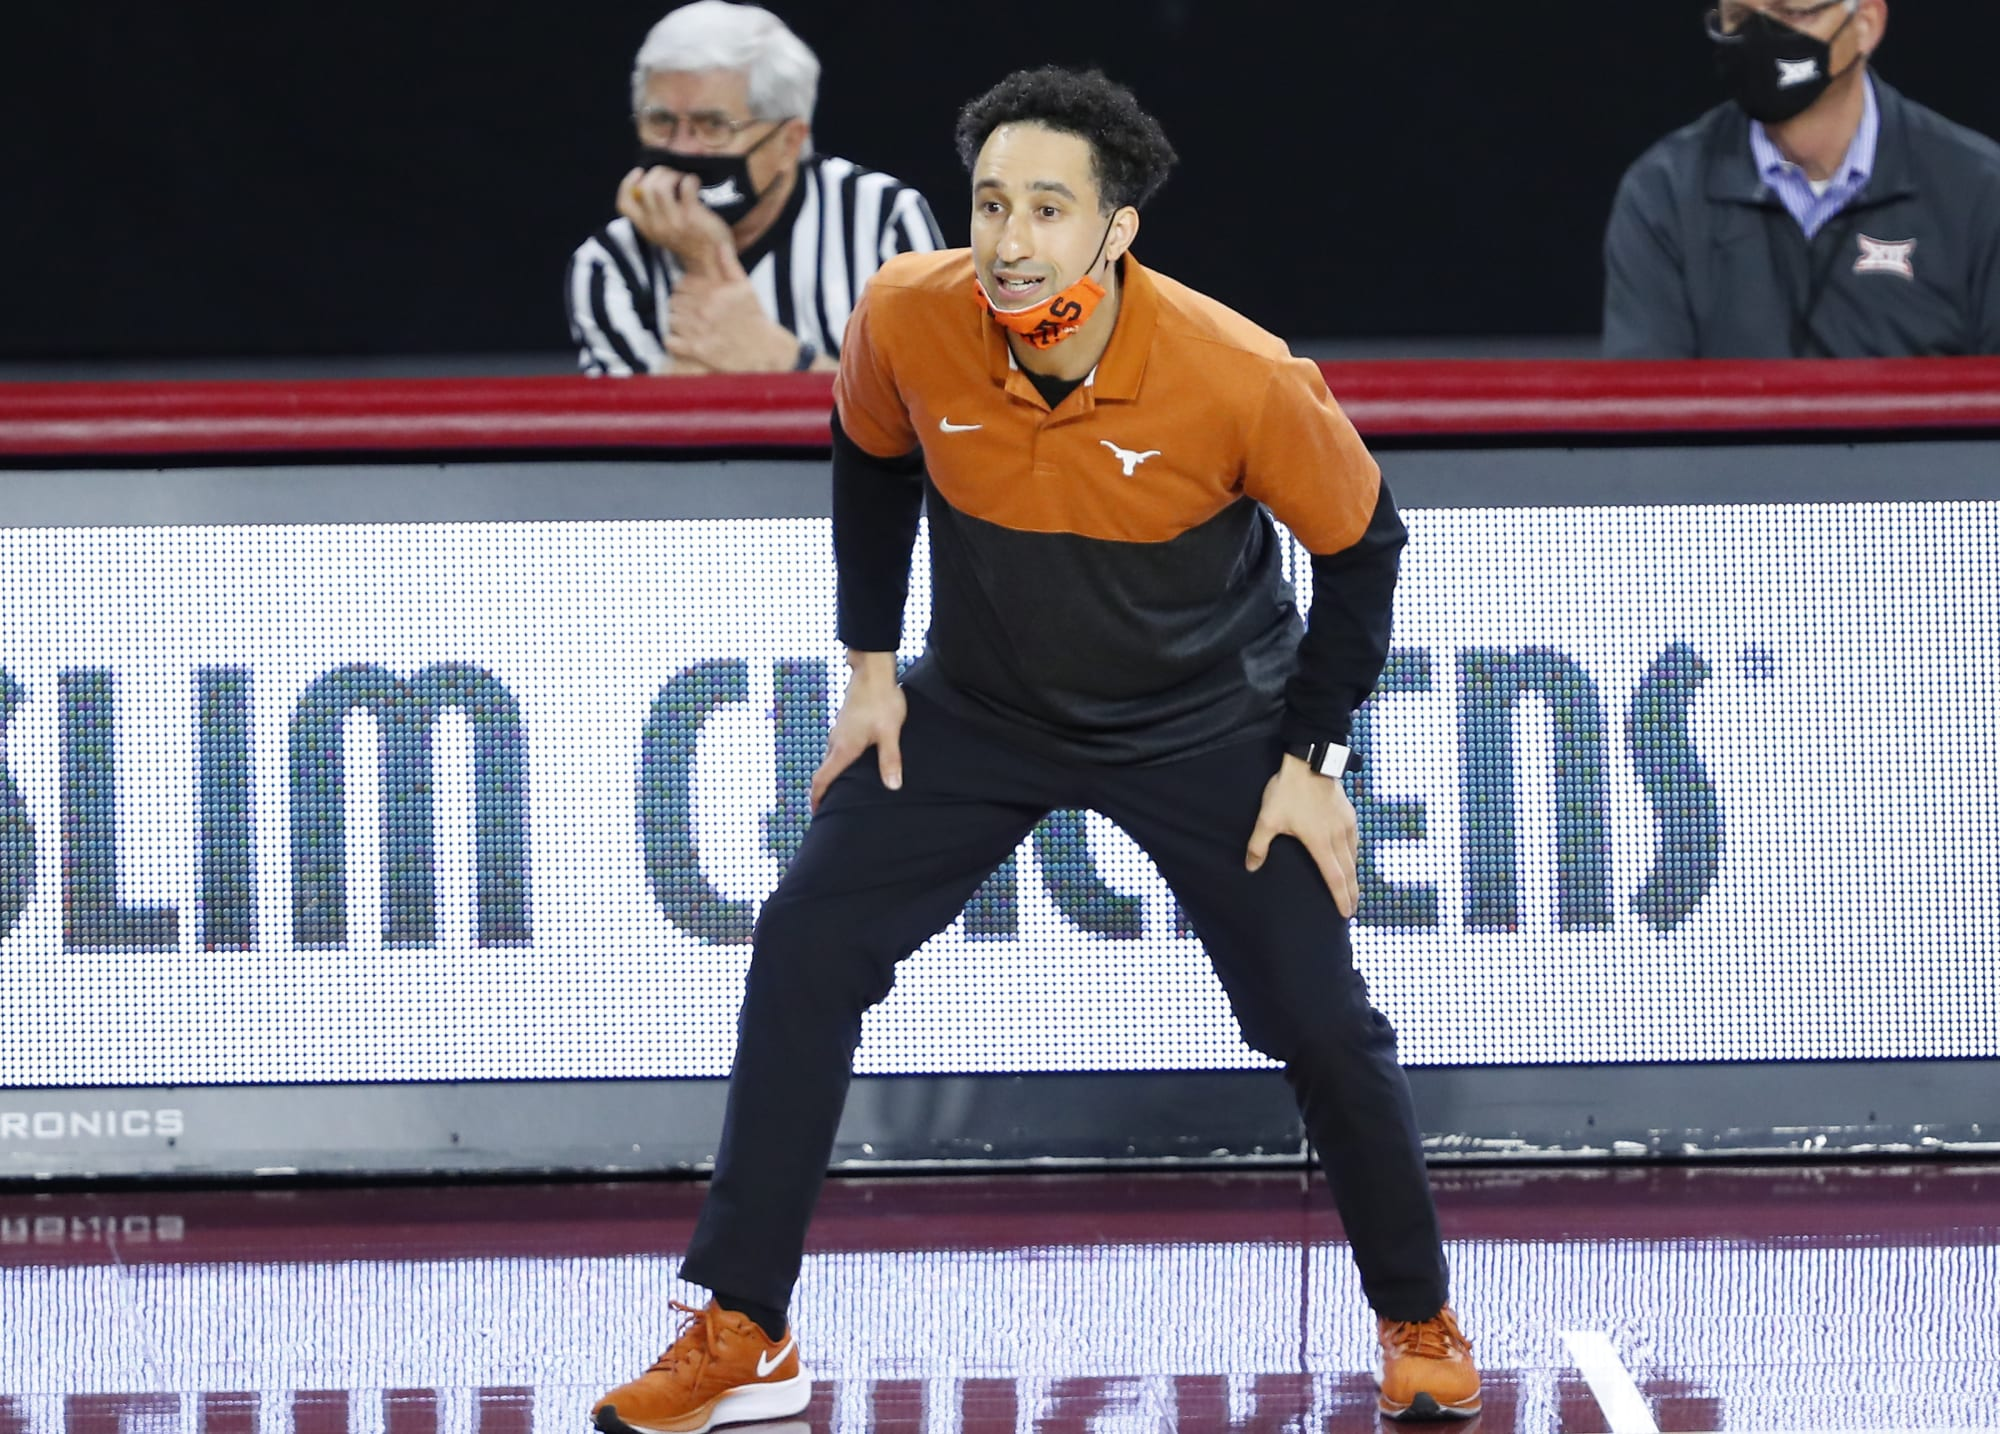 Texas basketball: The choice to replace Shaka Smart is an obvious one for Longhorns